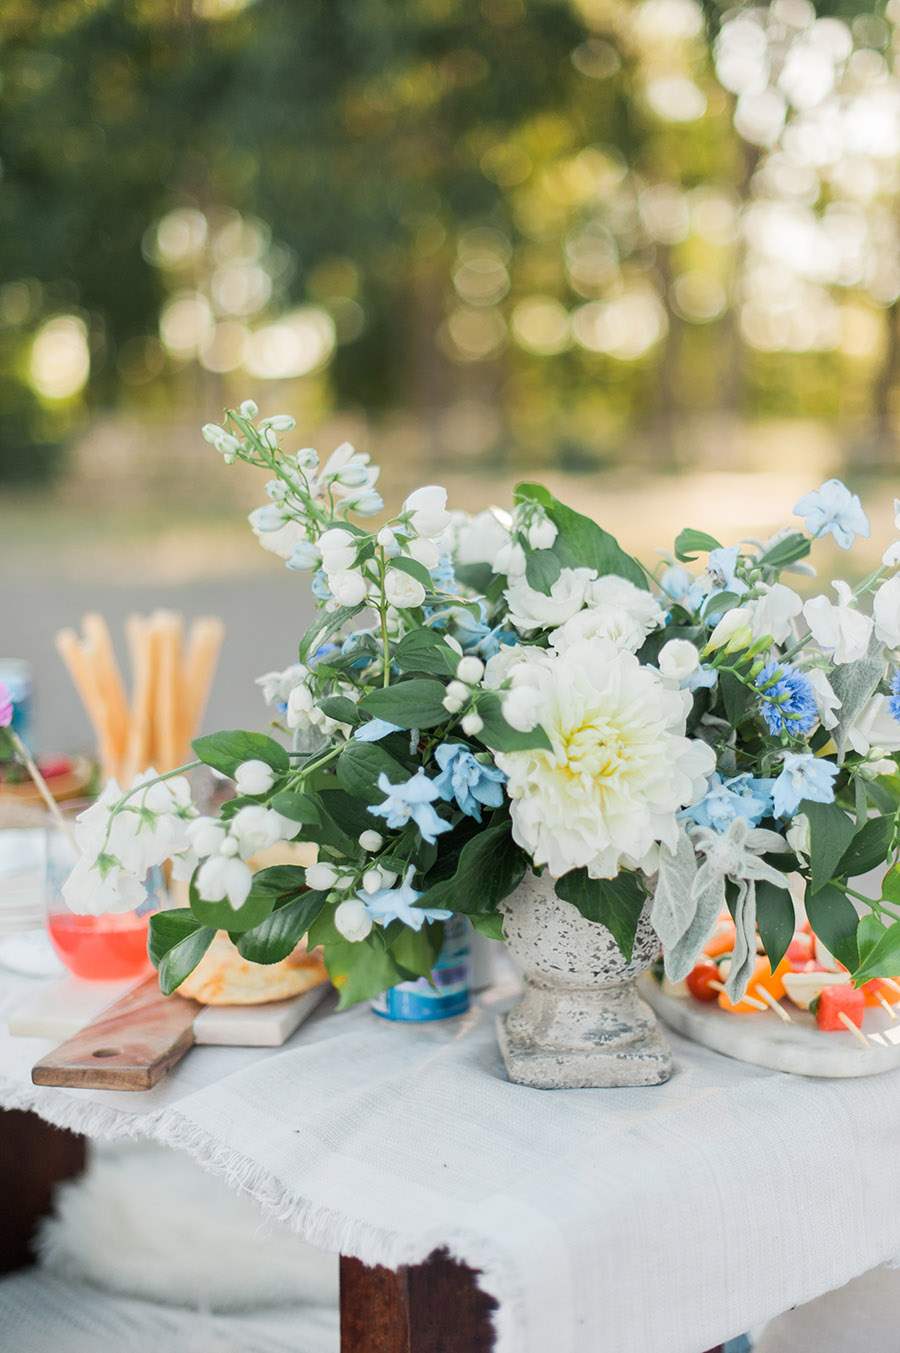 Party and table decorating ideas with flowers